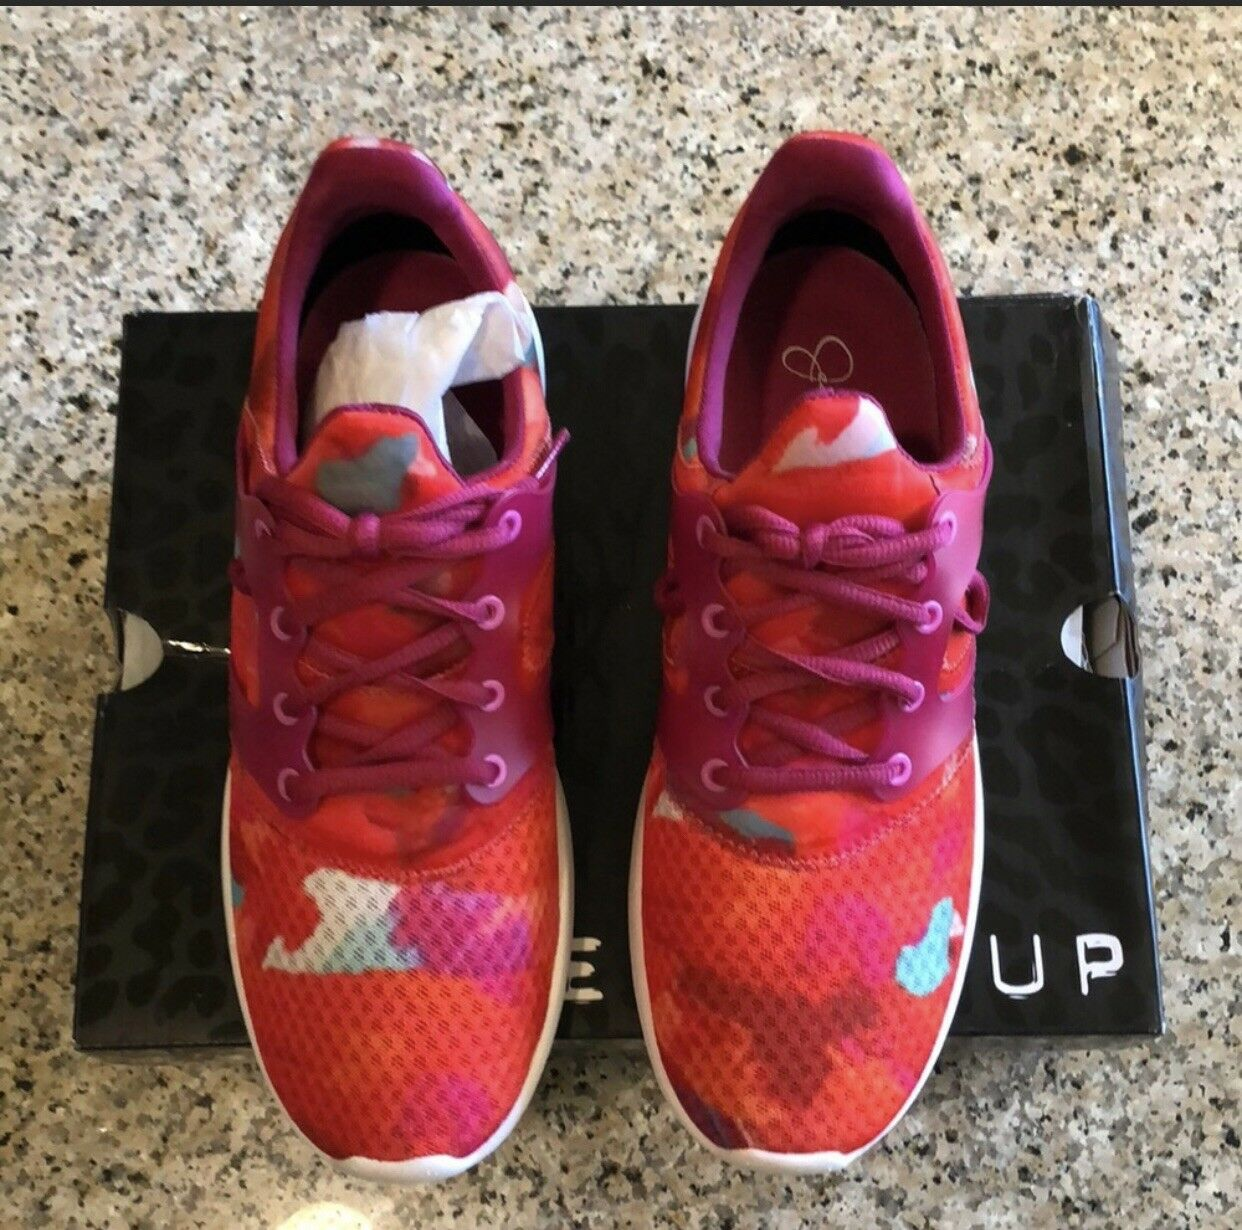 Jessica Simpson The Warm Up Sneakers Size 9 Women Never Worn Pink with splashes